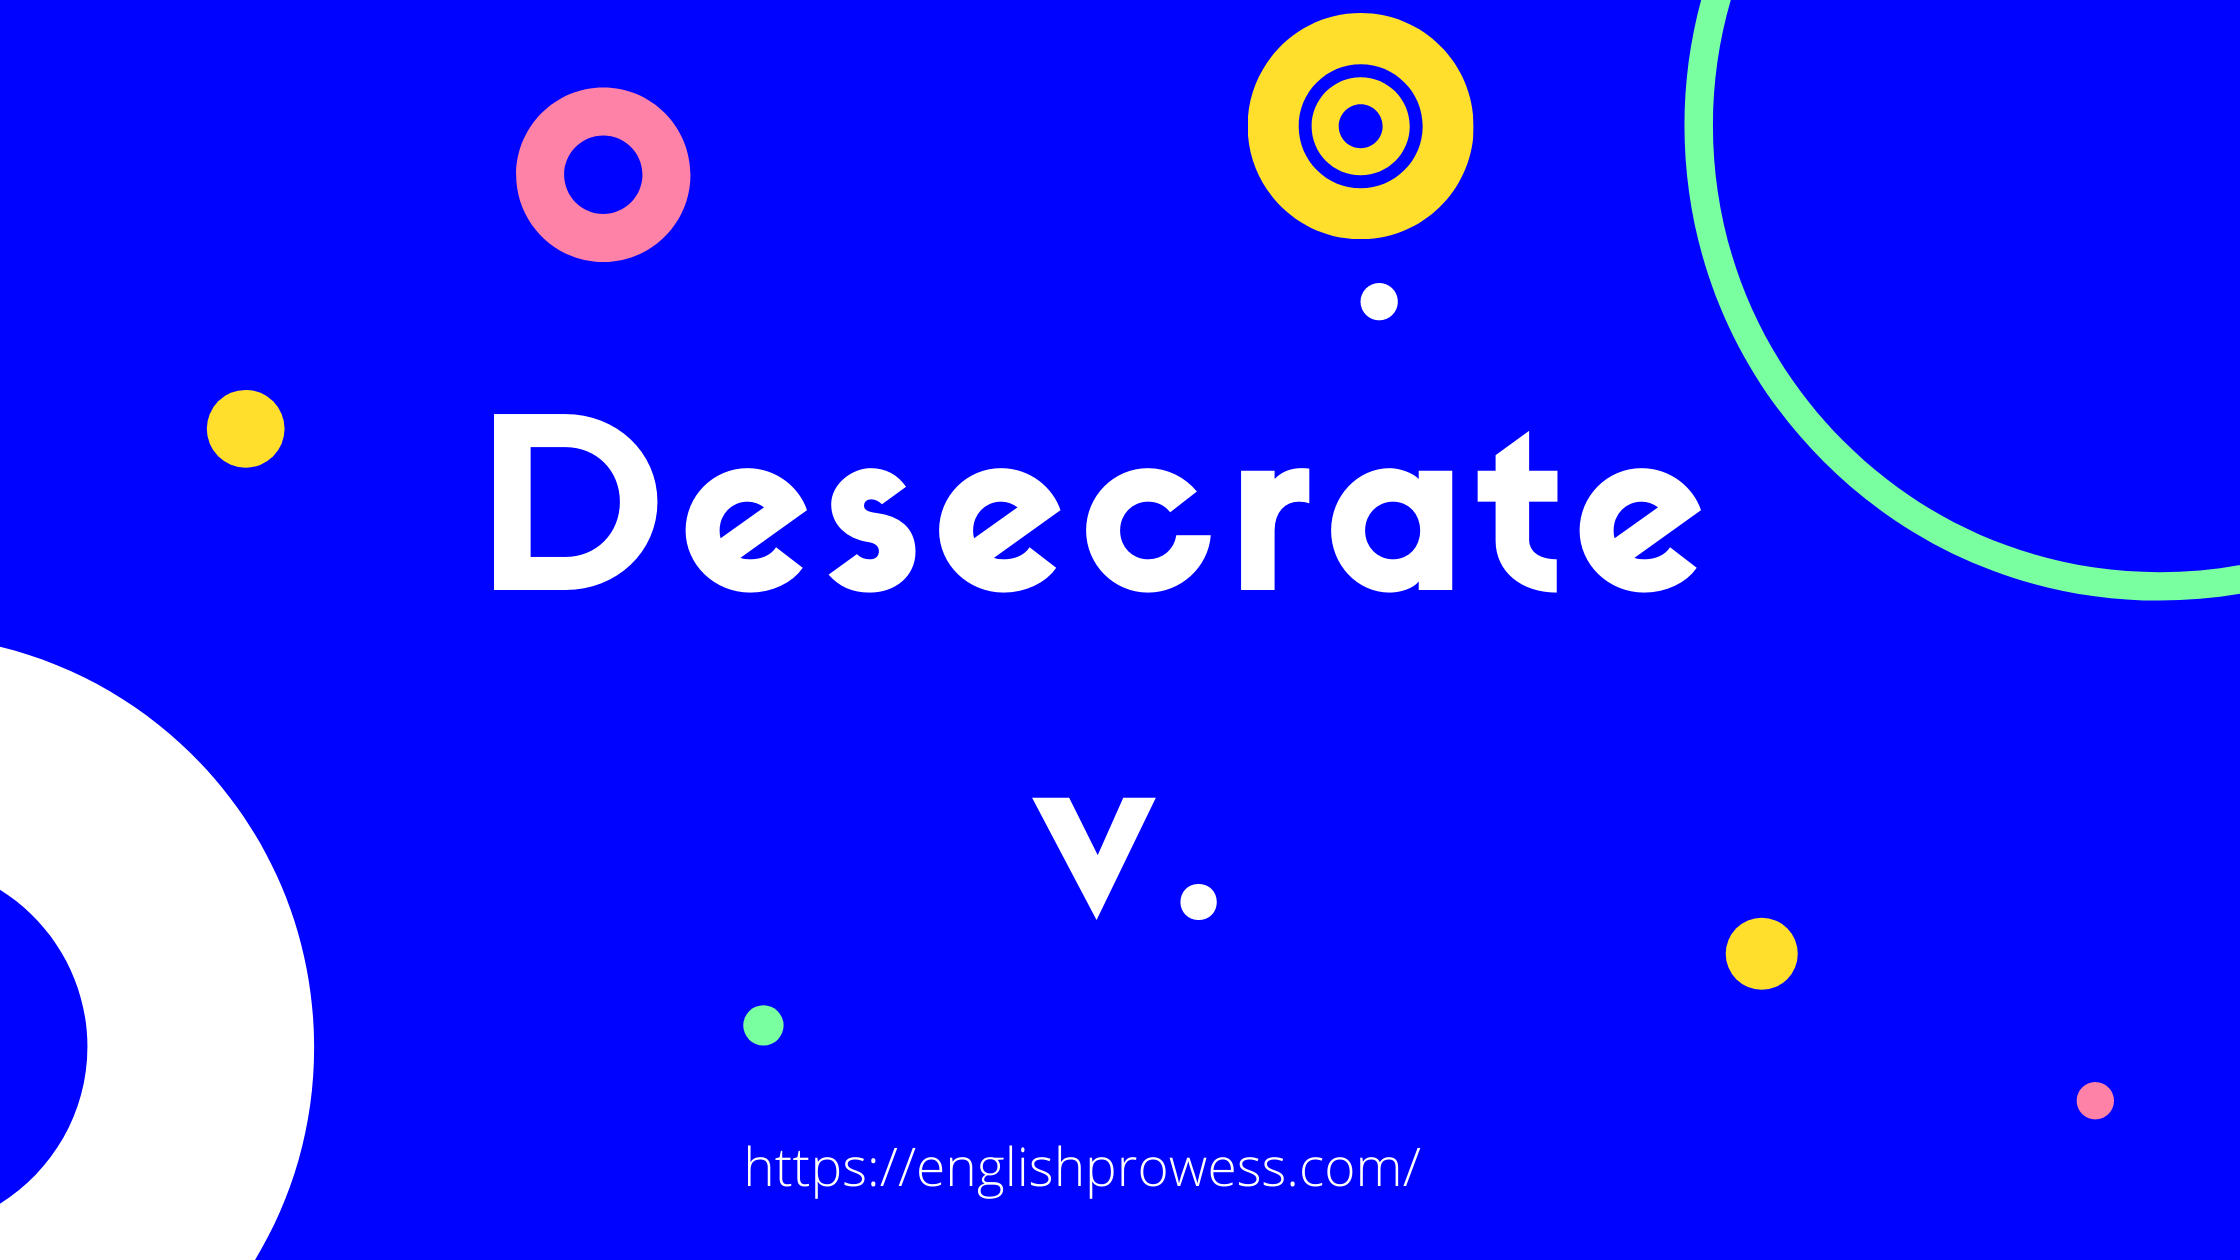 Desecrate Meaning